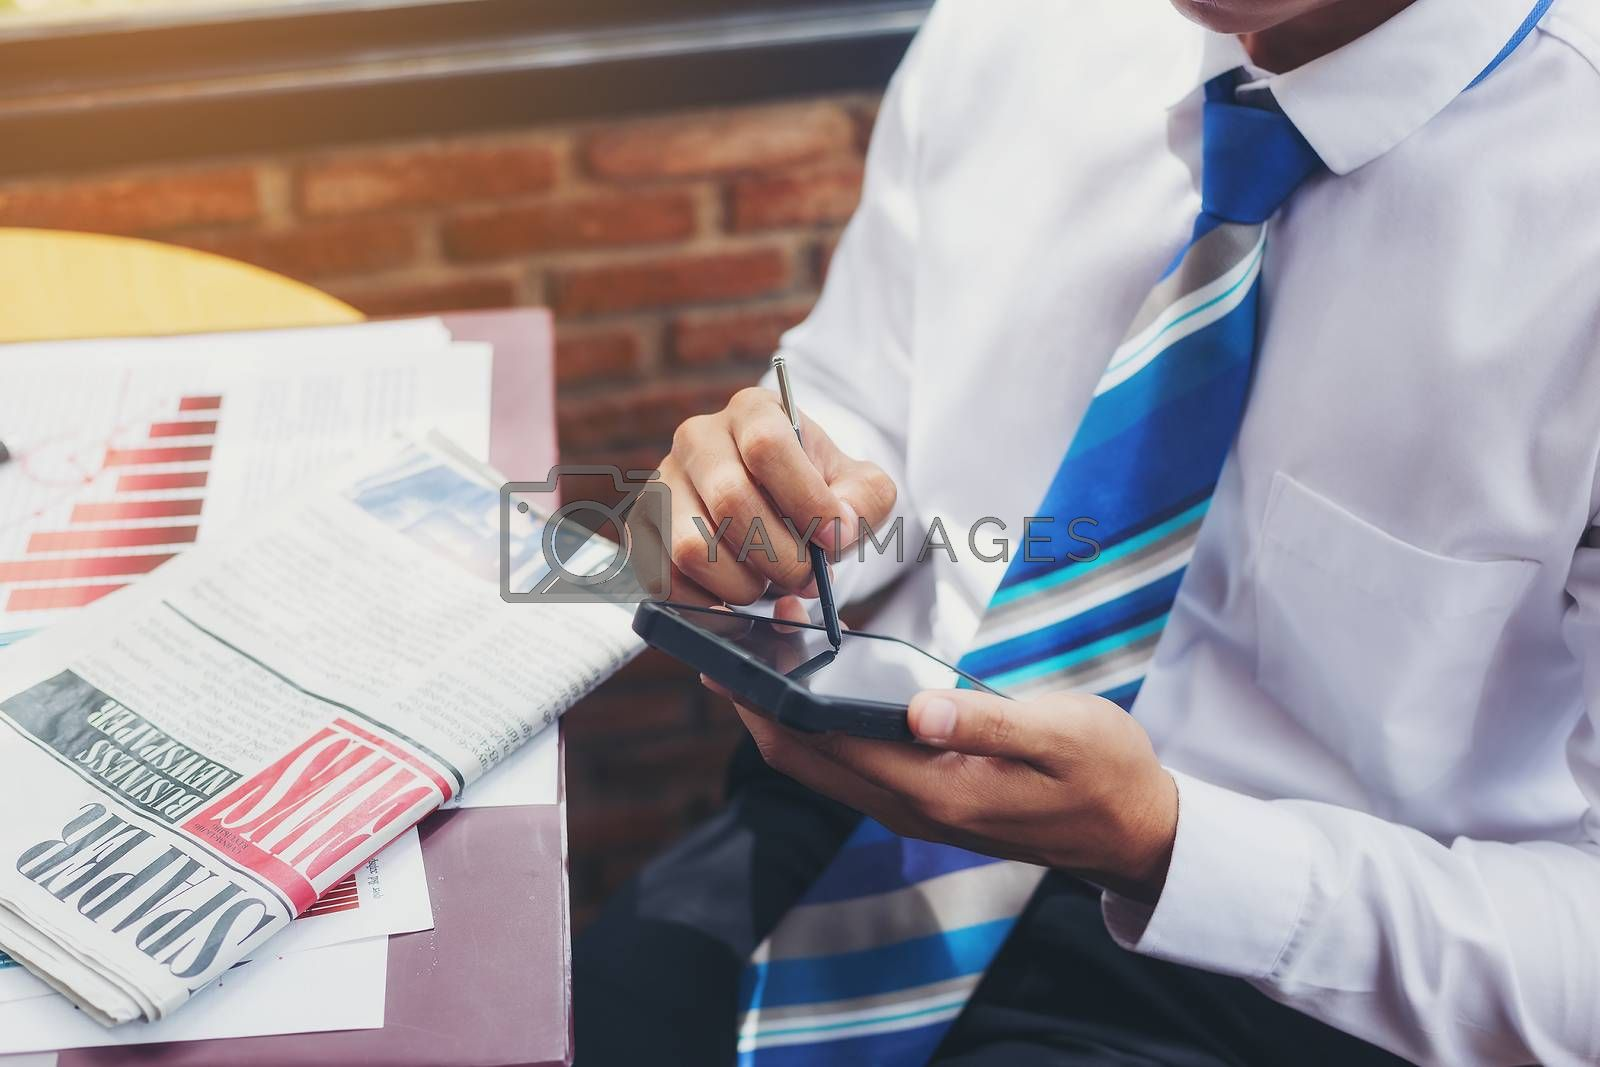 A handsome businessman reading a text from a mobile phone while sitting in a coffee shop.